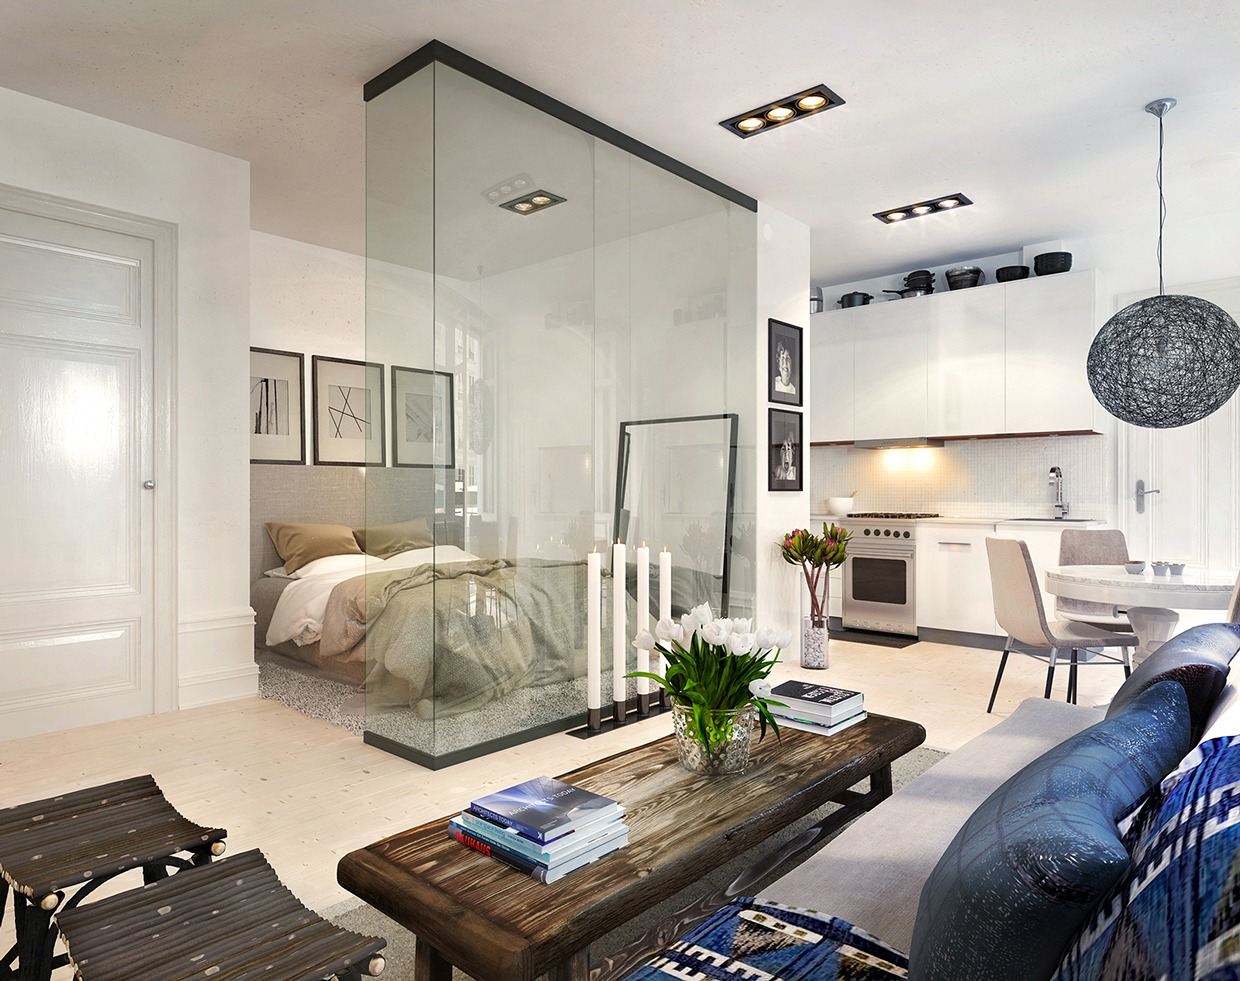 Ultimate studio design inspiration 12 gorgeous apartments - Interior glass wall designs for houses ...